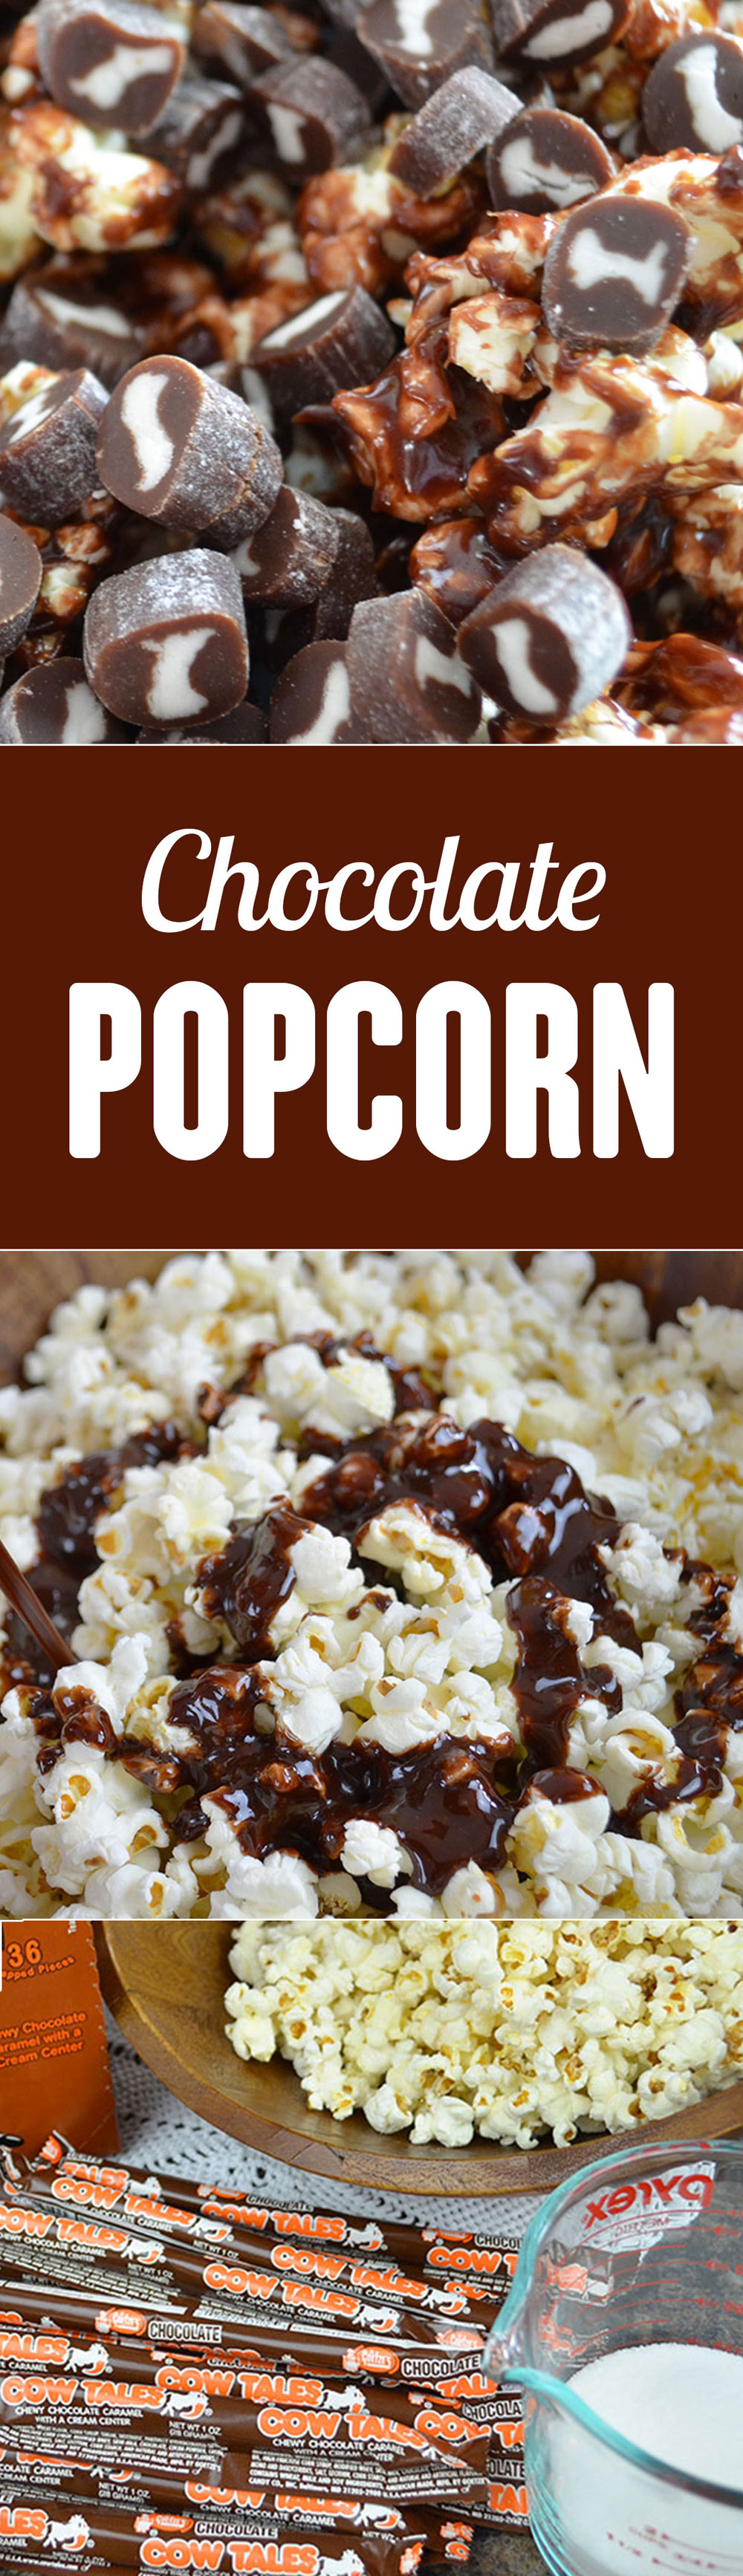 Sweet and salty! This is the best chocolate popcorn recipe I've tried so far! It's super easy and delicious. Save this snack recipe for movie night or a snow day. Chocolate Cow Tales® Popcorn Recipe.